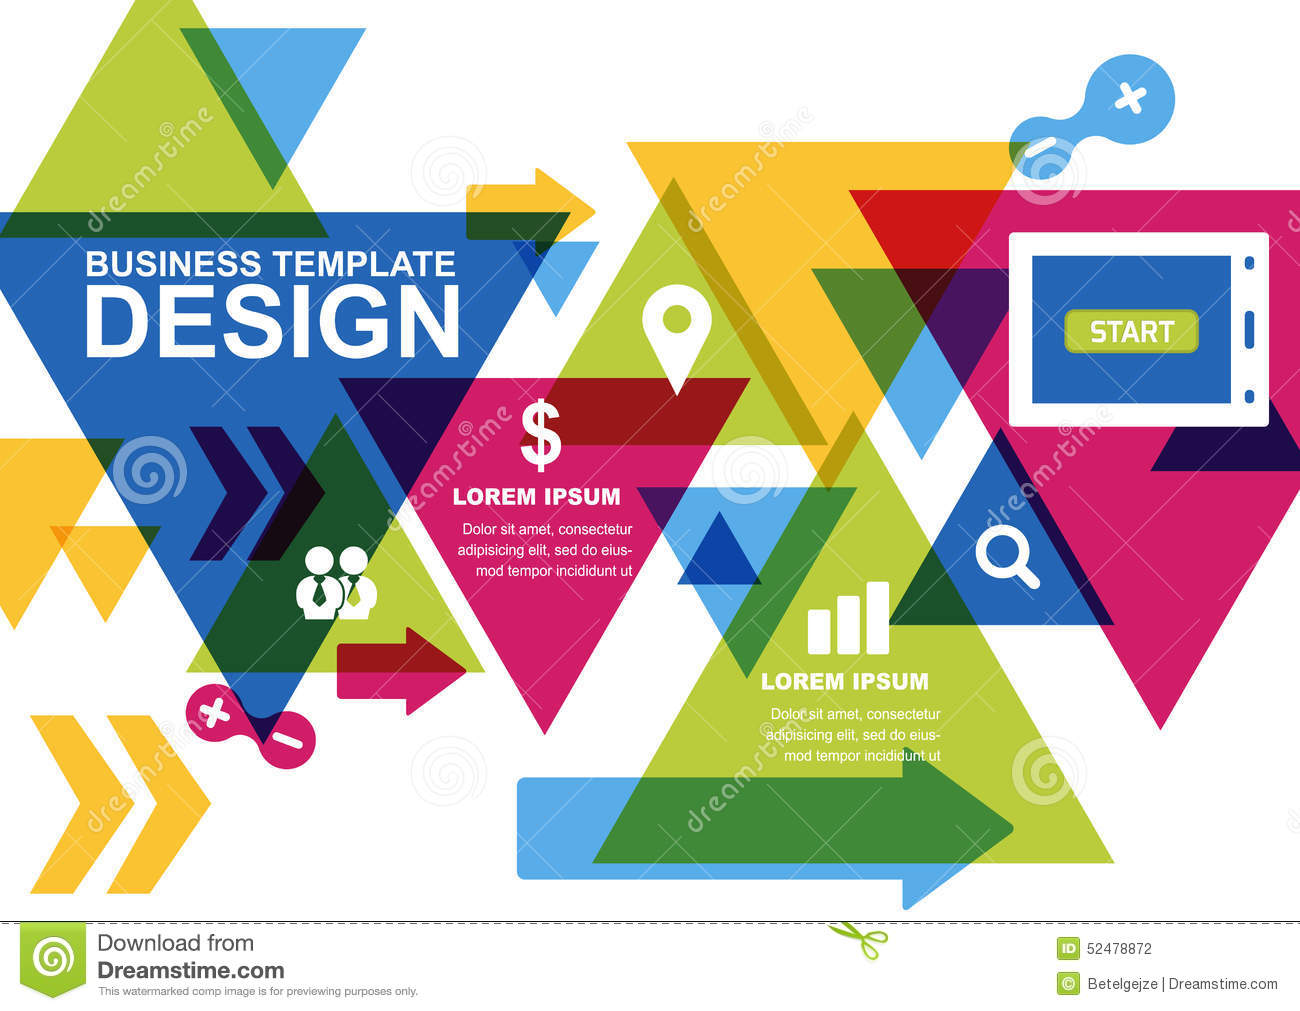 Poster design software free download -  Business Design Flyer Poster Download